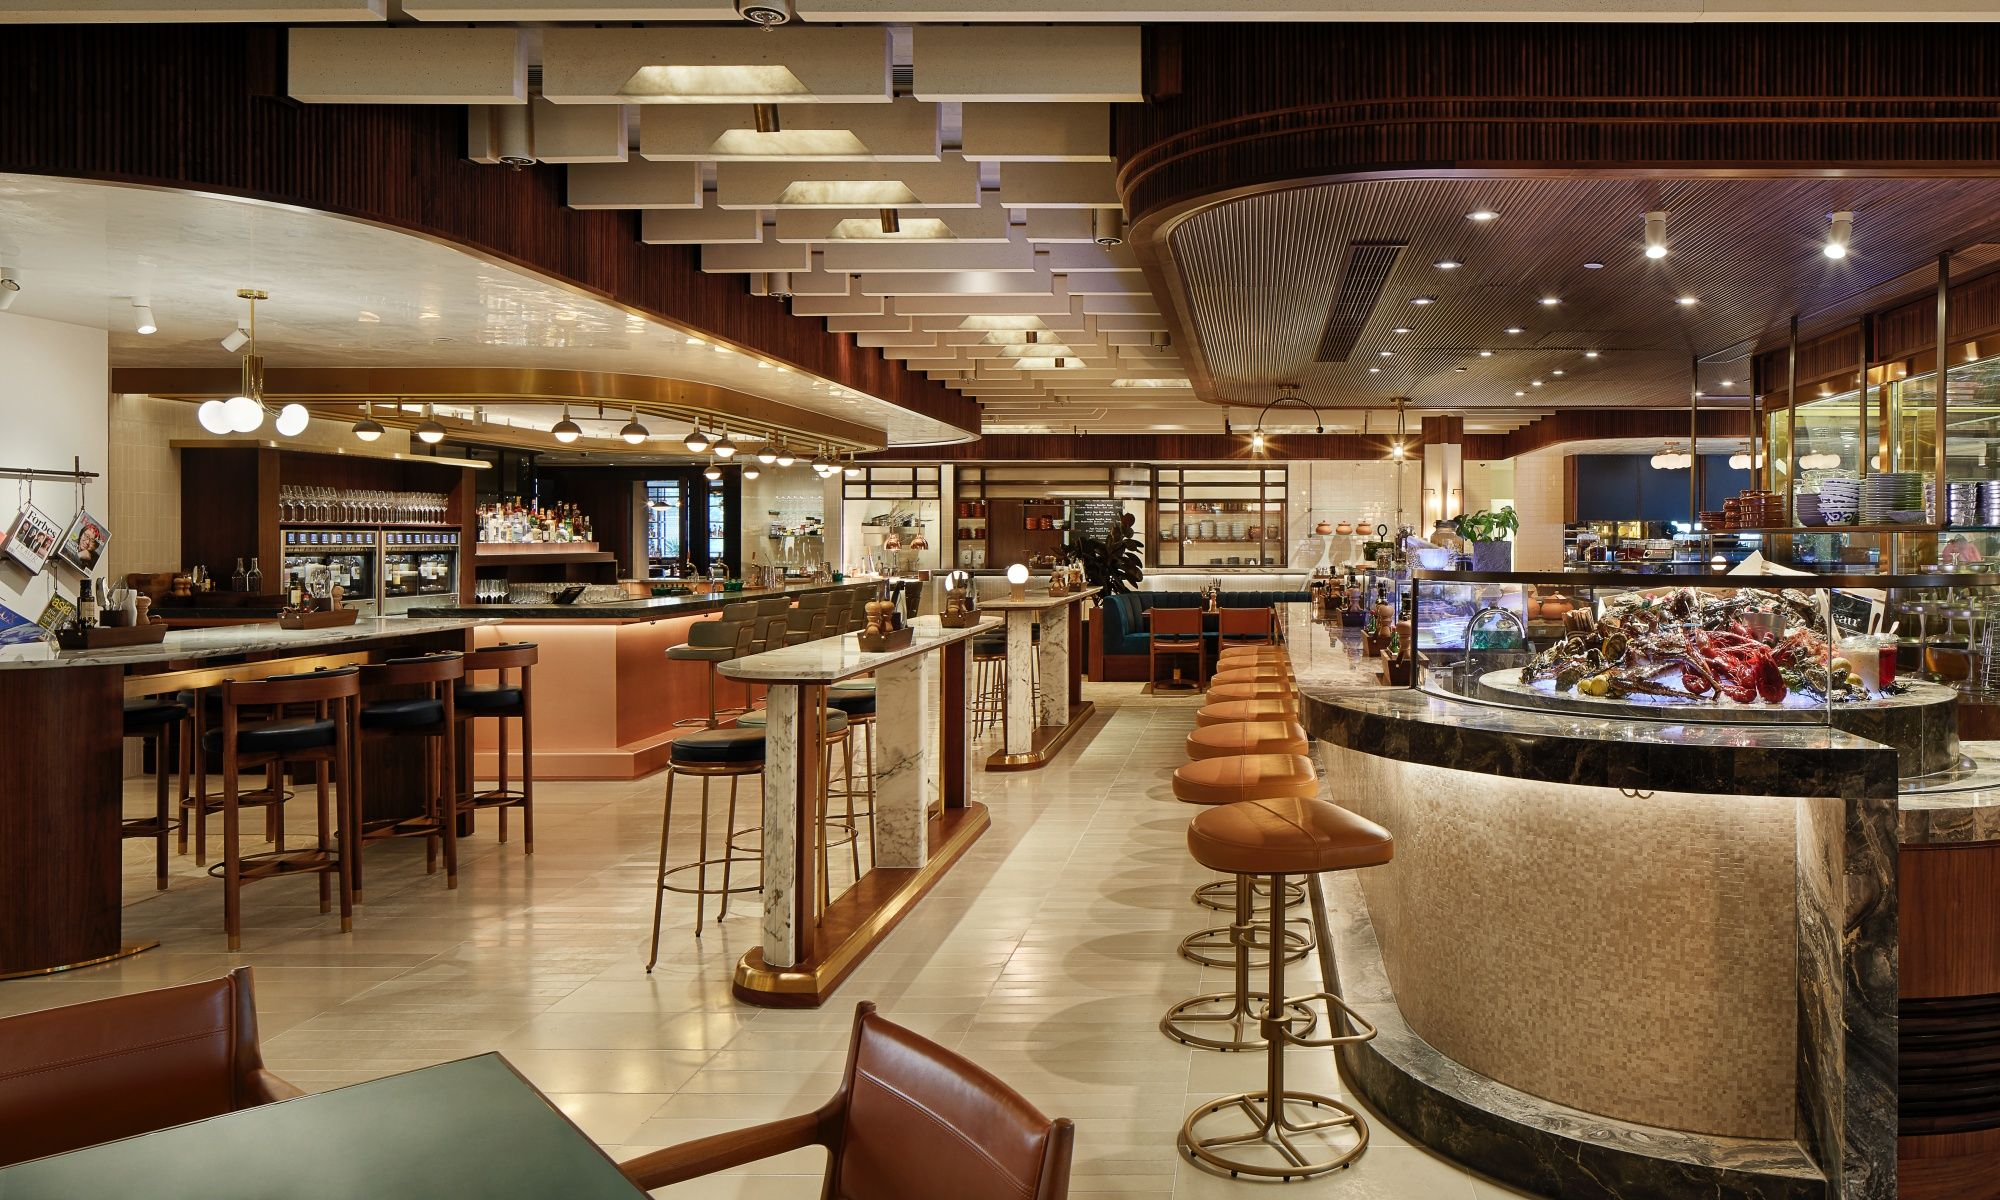 Restaurant Review: Will A Food Hall Concept Work In A Luxury Hotel? Bayfare Social Has The Answer